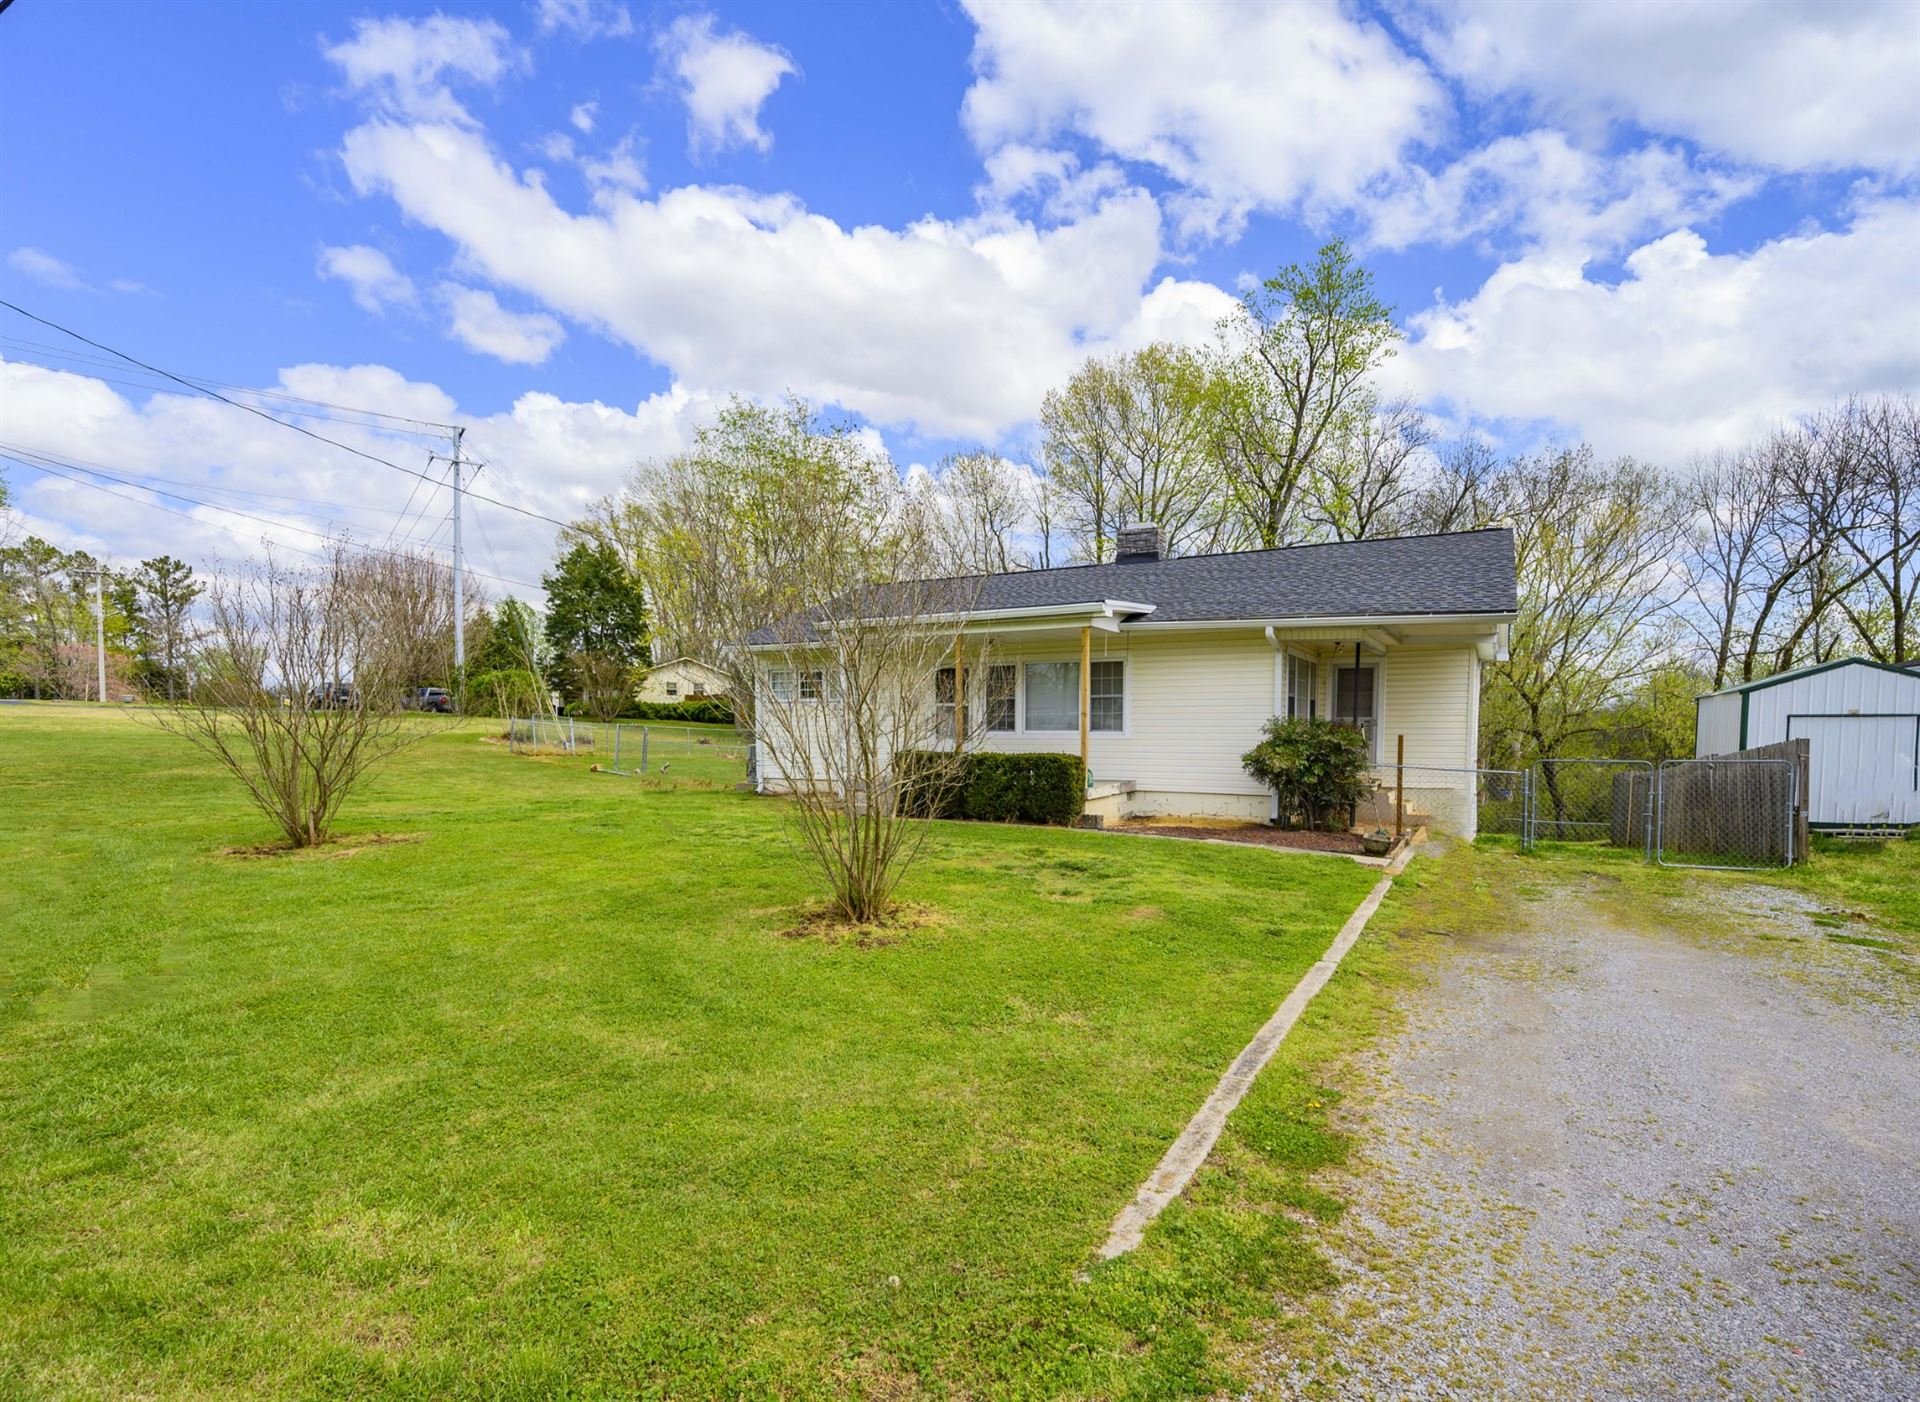 303 Cliffside Ave, Shelbyville, TN 37160 - MLS#: 2243302